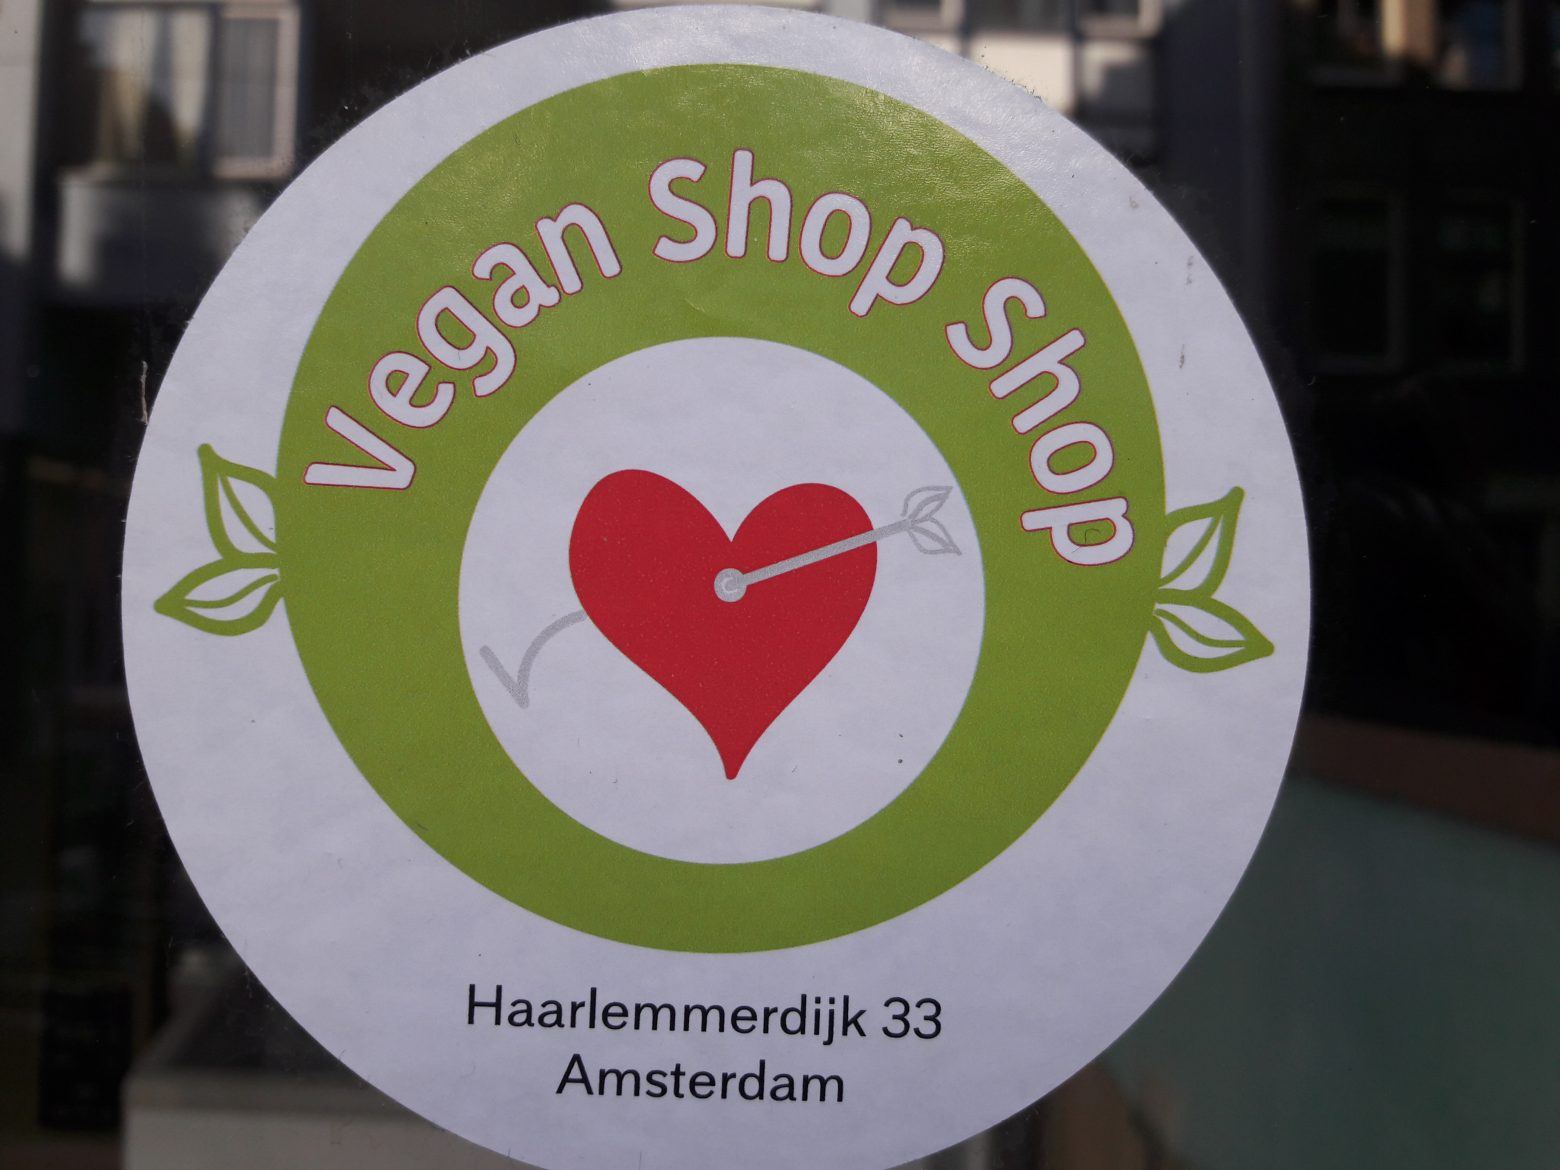 Vegan Shop Shop – new vegan food store